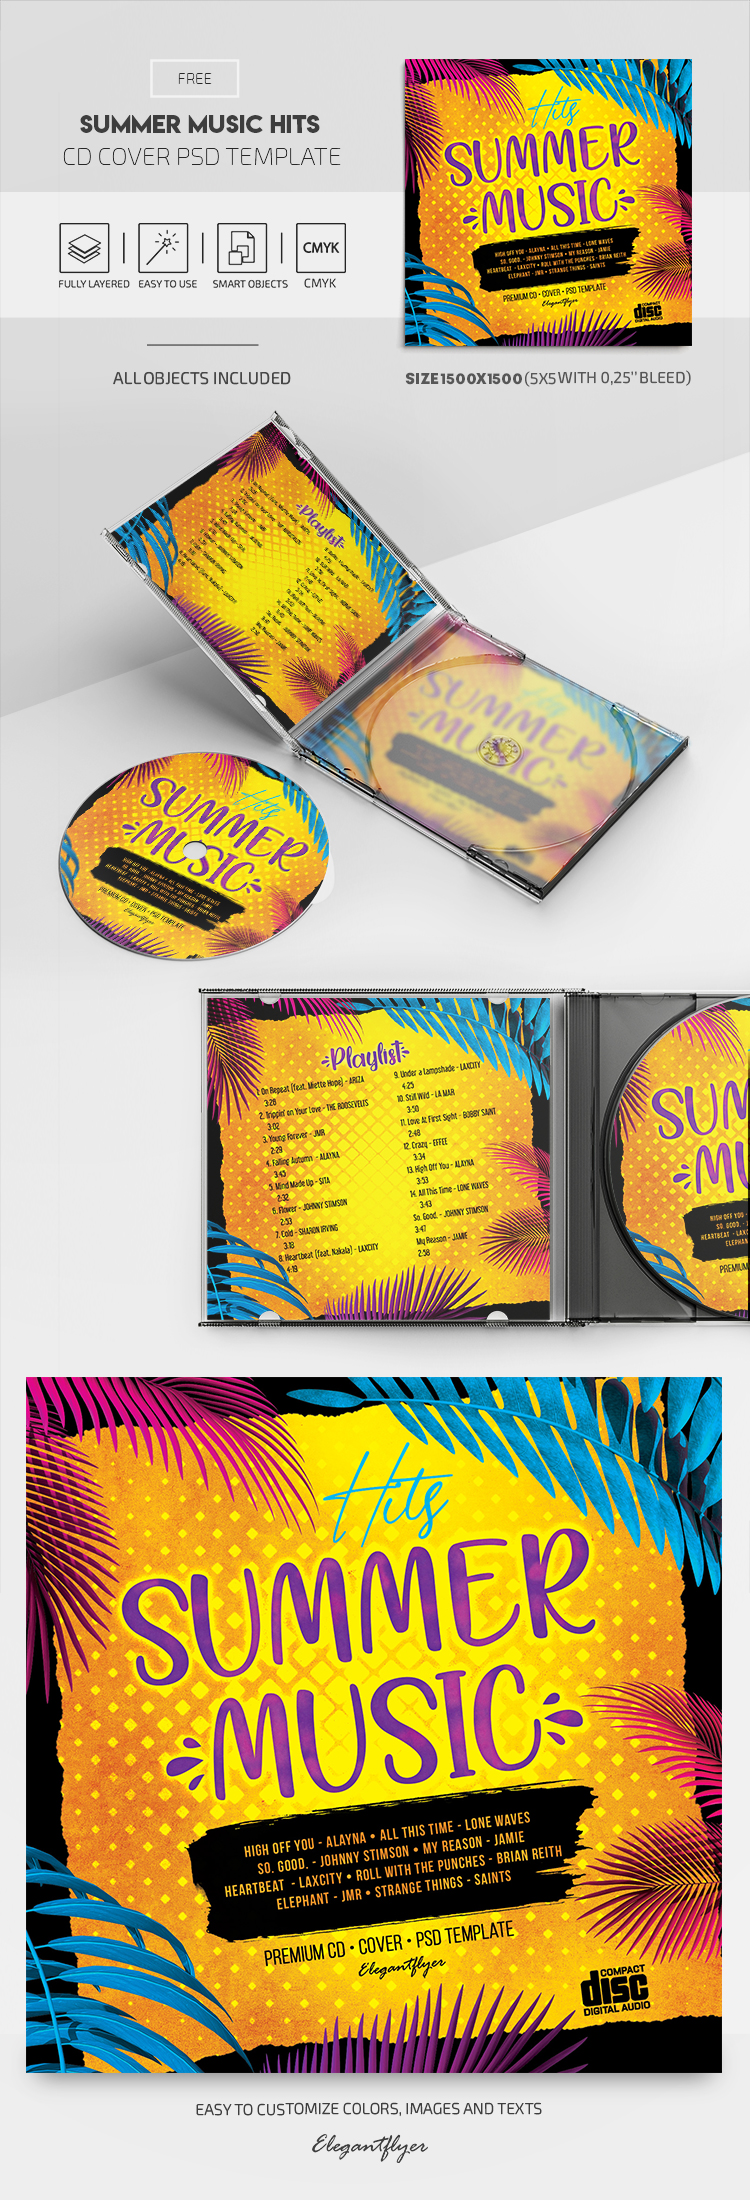 Summer Music Hits – Free CD Cover PSD Template